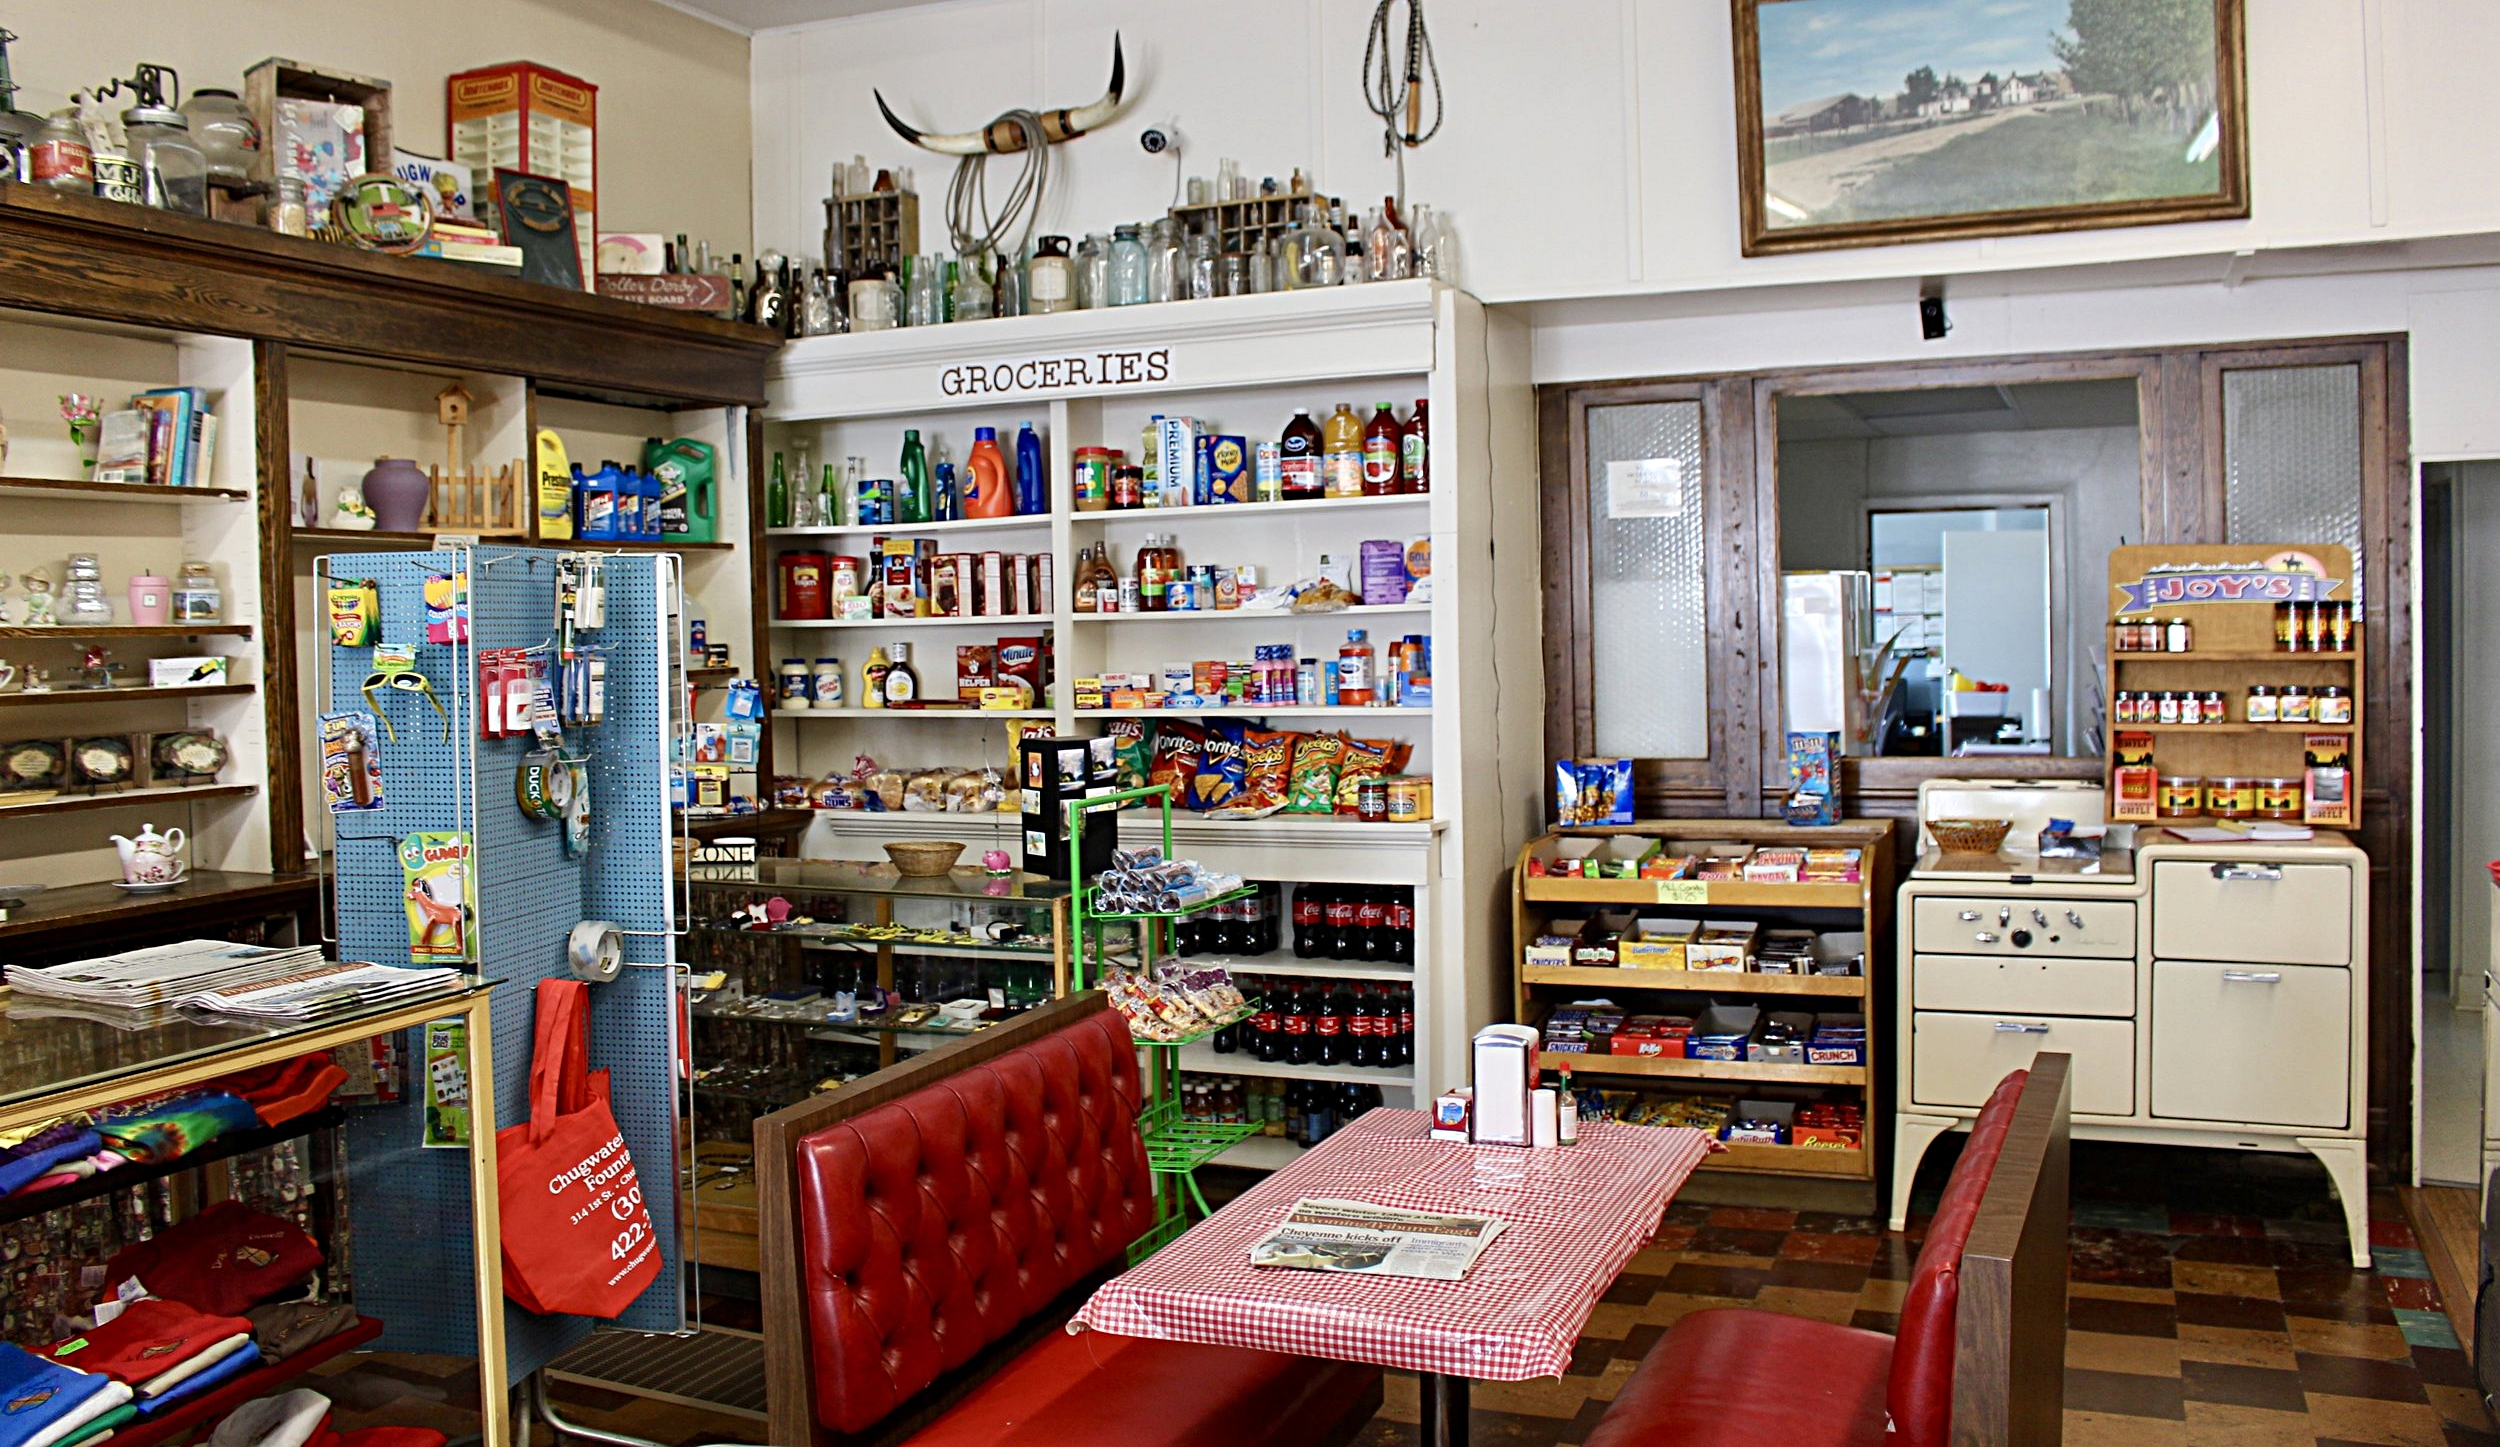 Groceries are sold in the back corner of the Soda Fountain